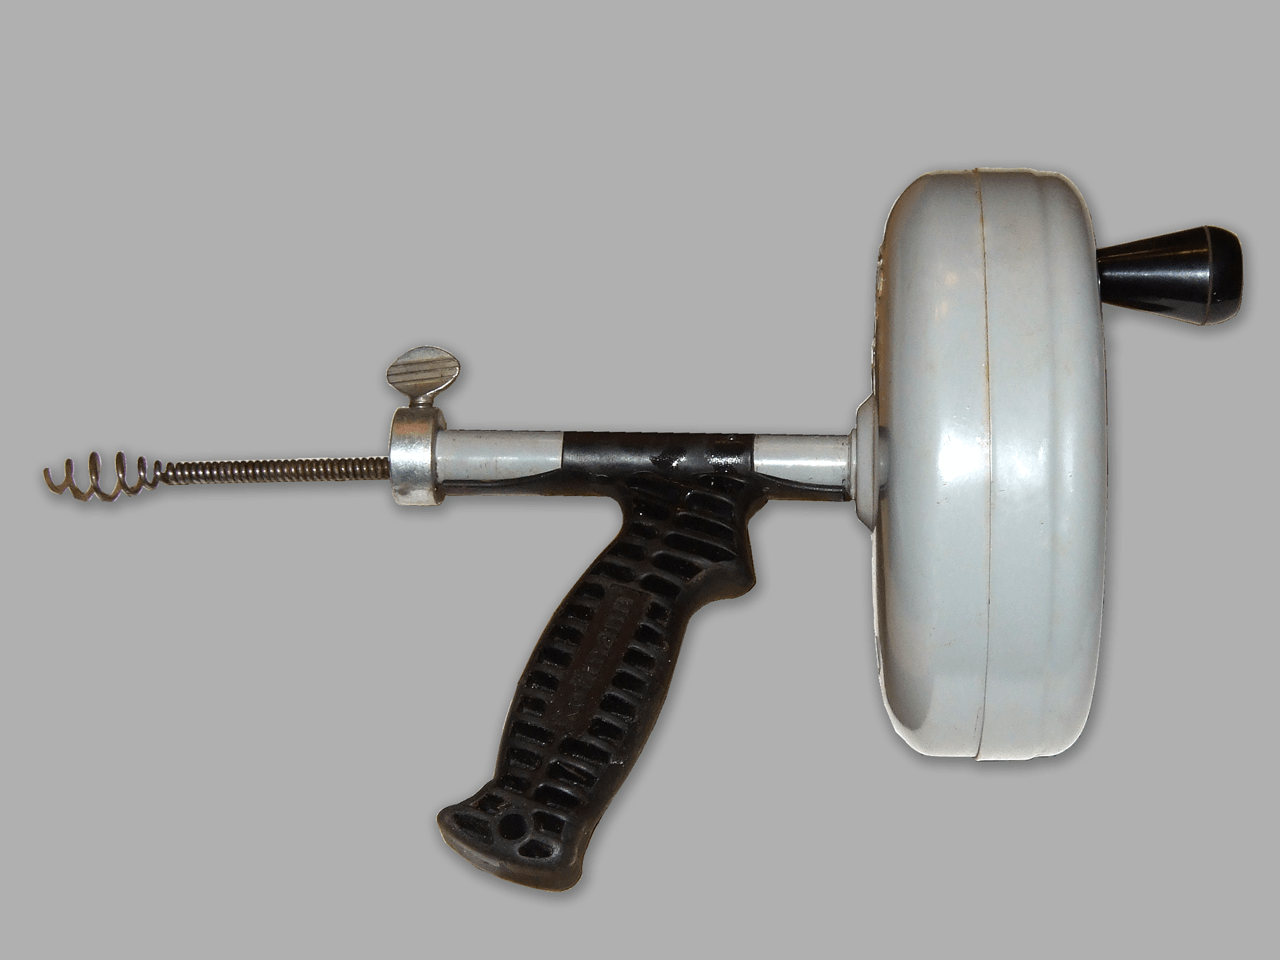 Handheld Drain Auger Toilet Snake Used for Toilet Unclogging